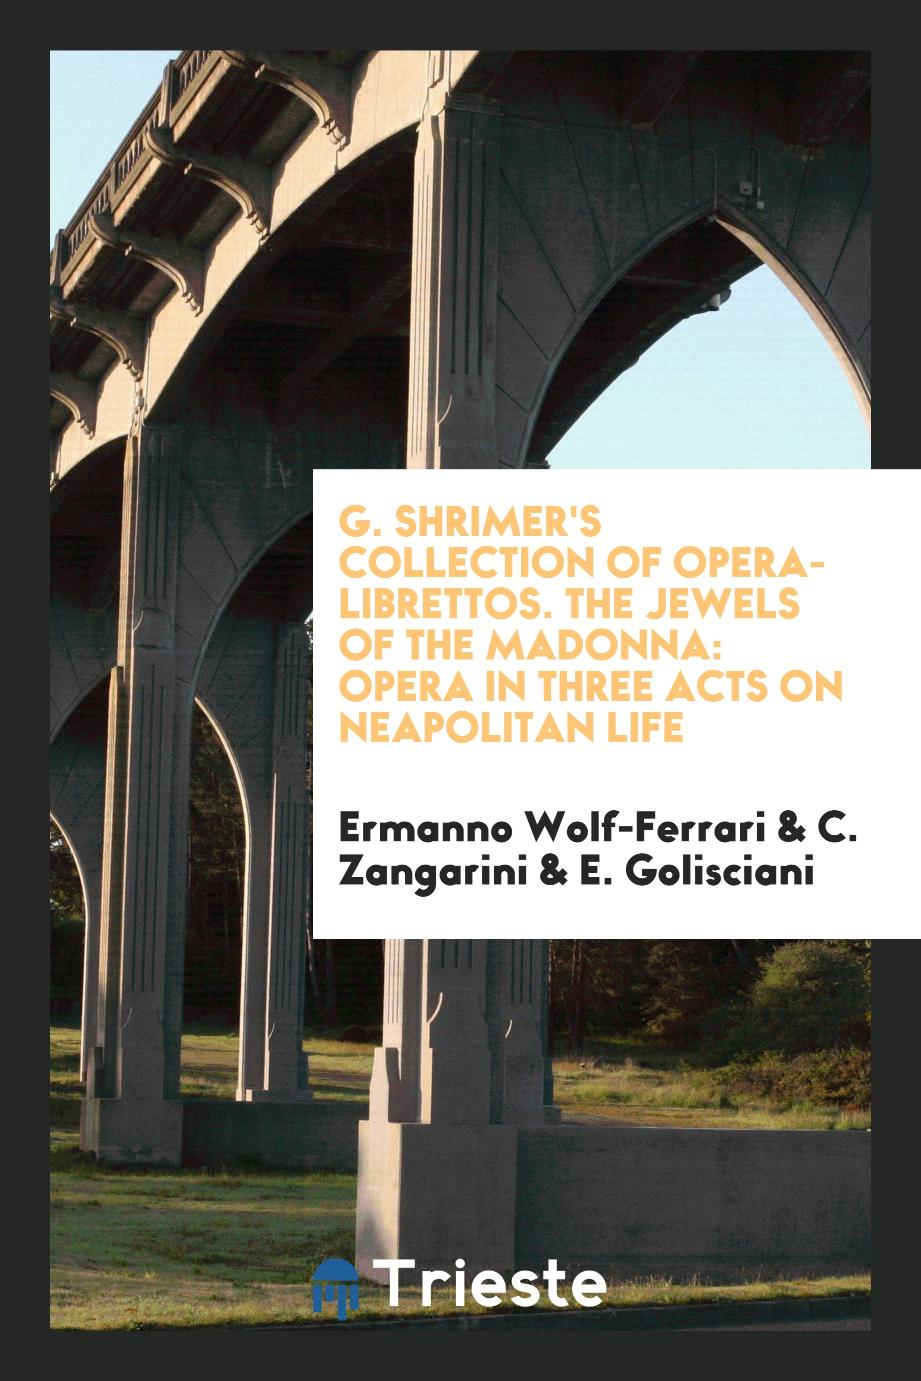 G. Shrimer's Collection of Opera-Librettos. The Jewels of the Madonna: Opera in Three Acts on Neapolitan Life